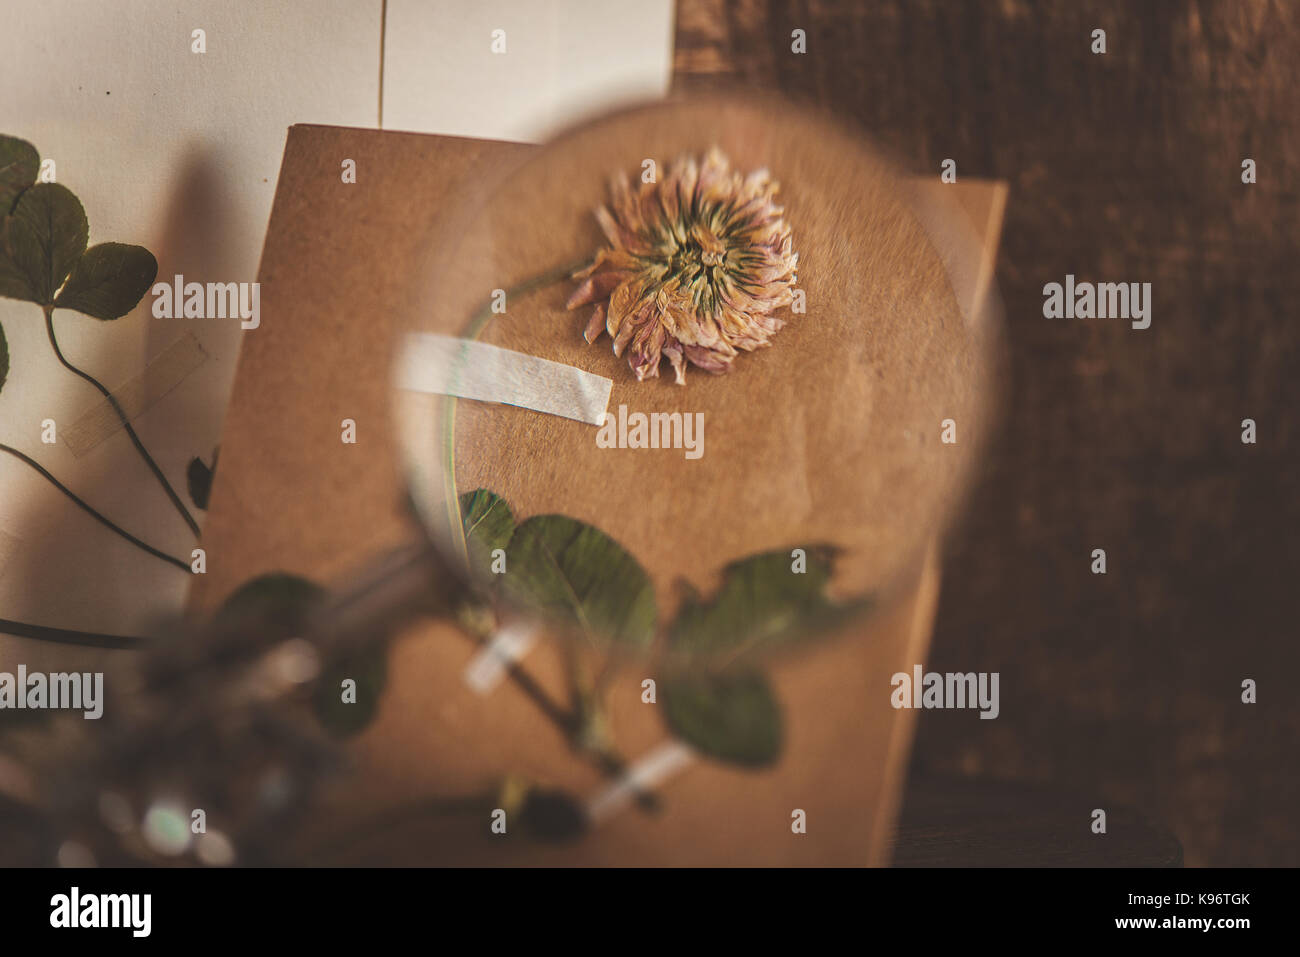 Warm still life with a clover under a magnifying glass, books, scissors, dried plants, moss and craft paper envelopes - Stock Image